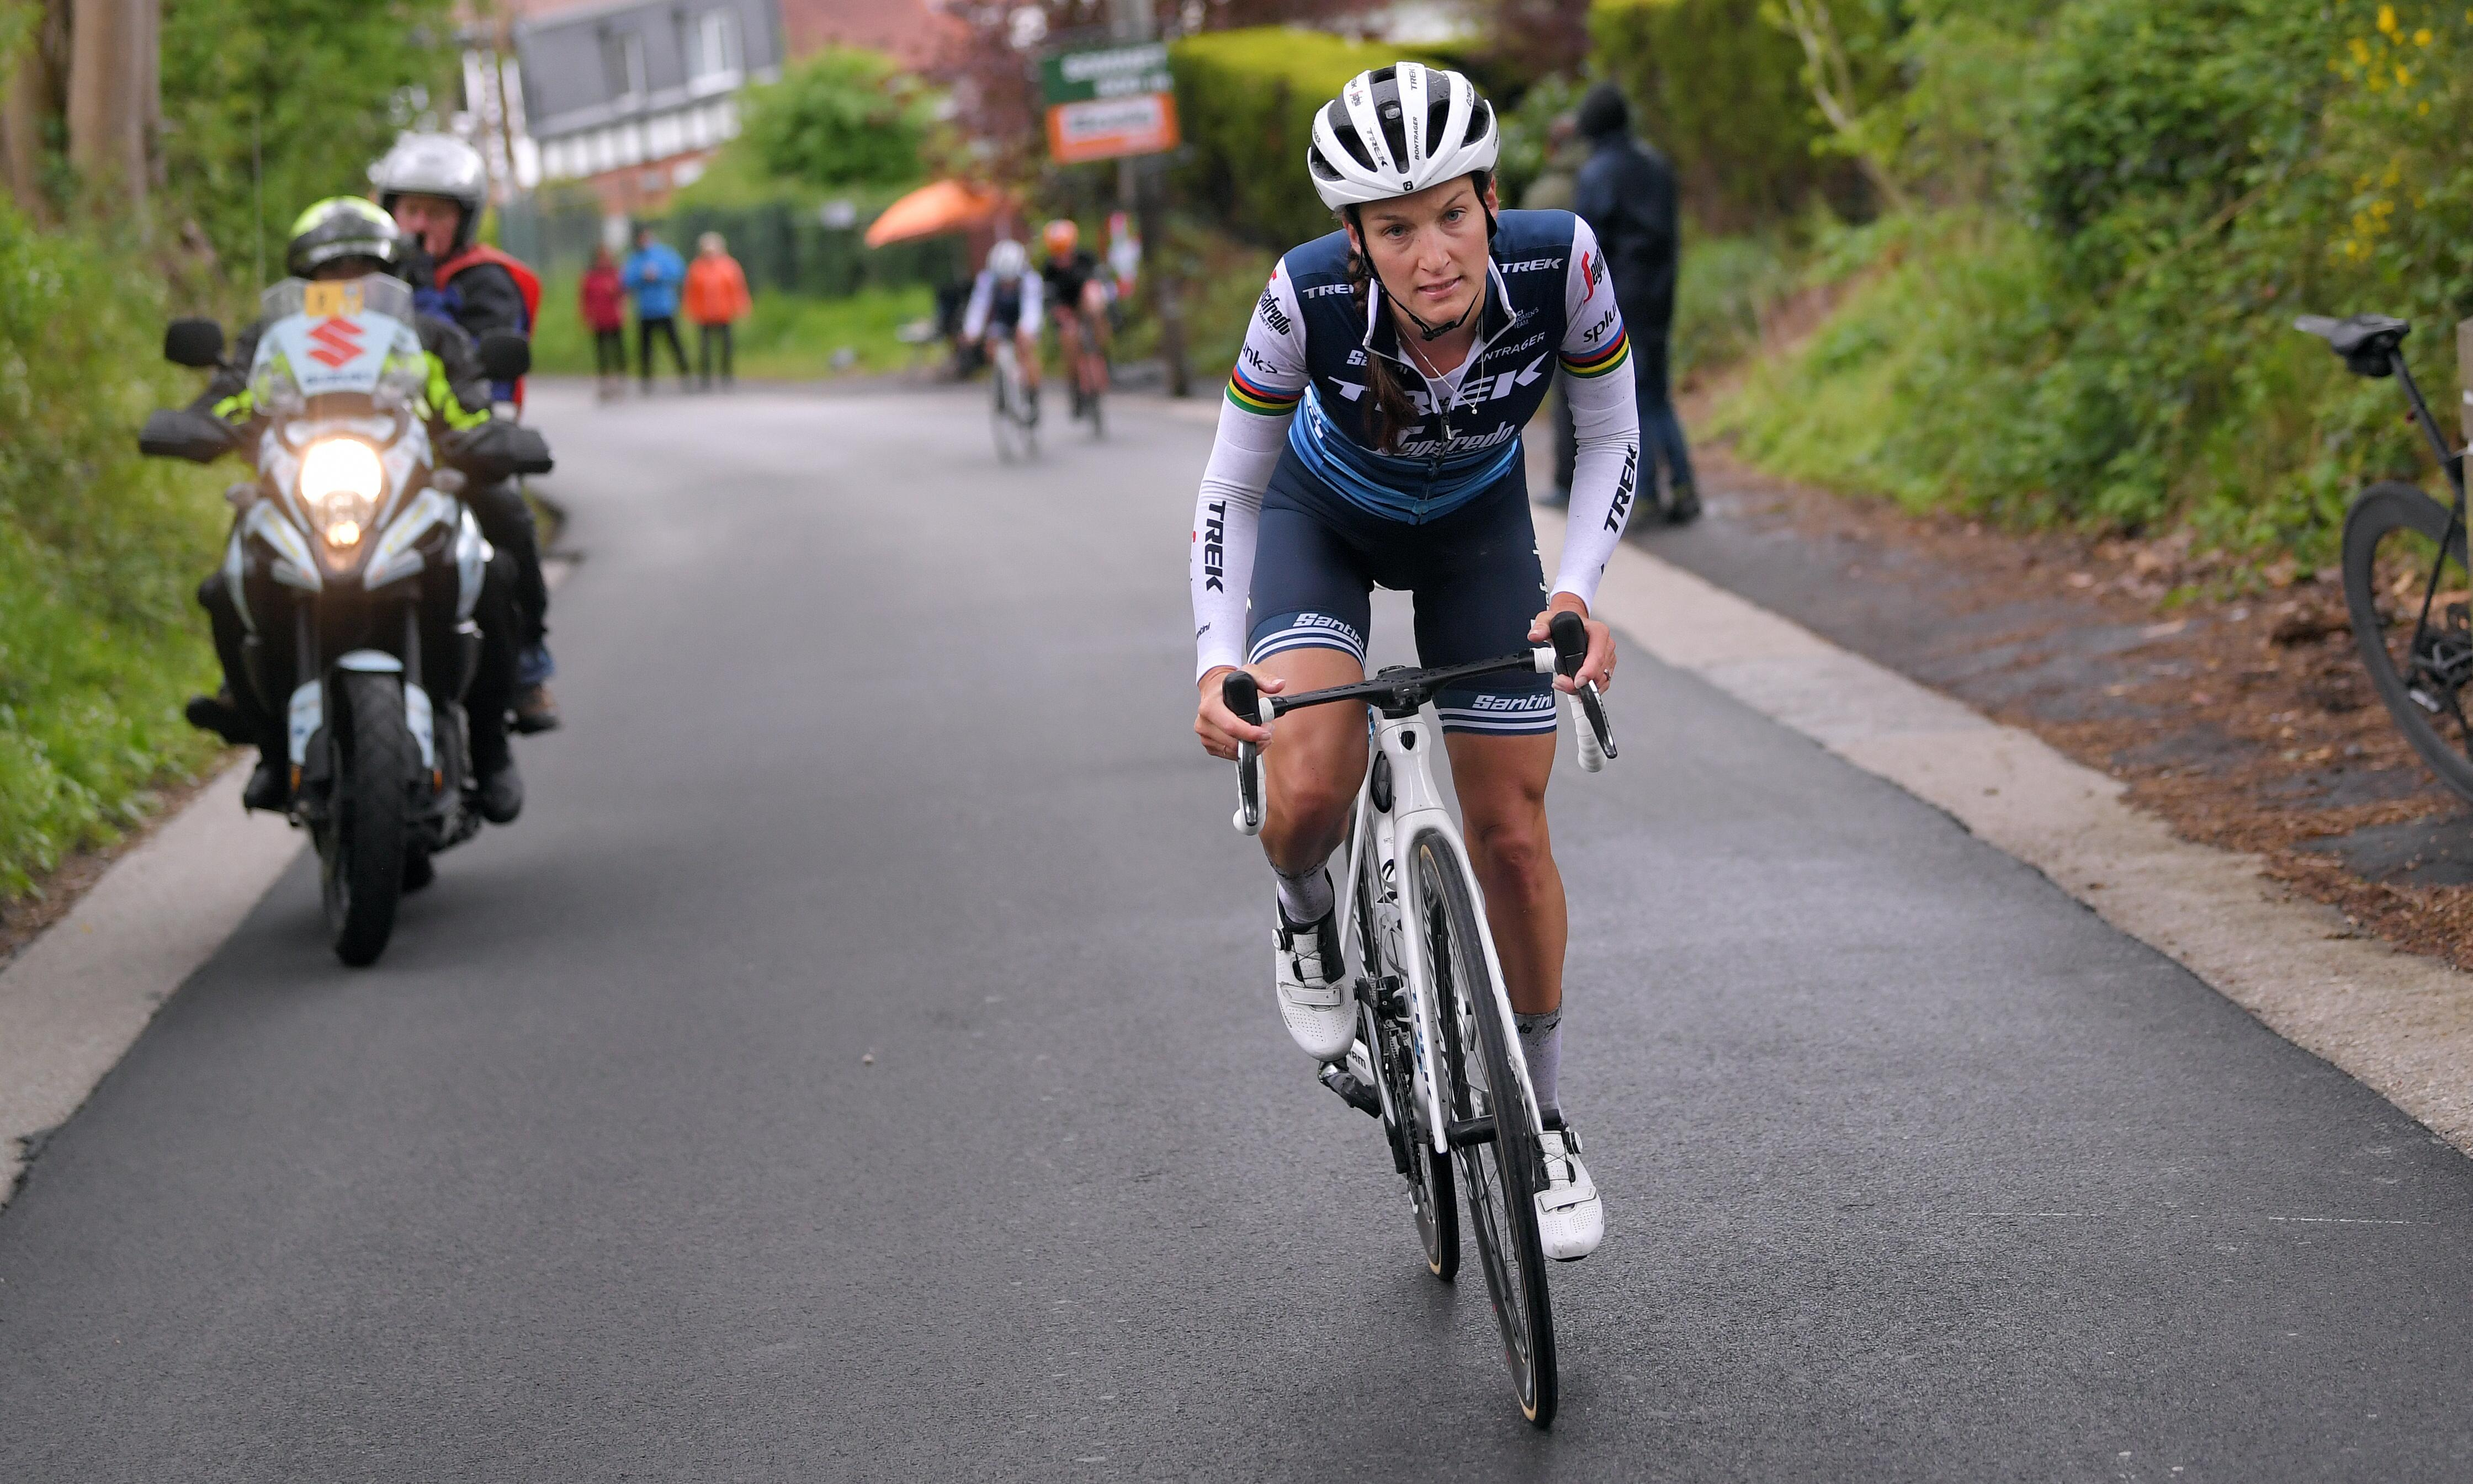 Lizzie Deignan heads GB's World Championships charge in Harrogate